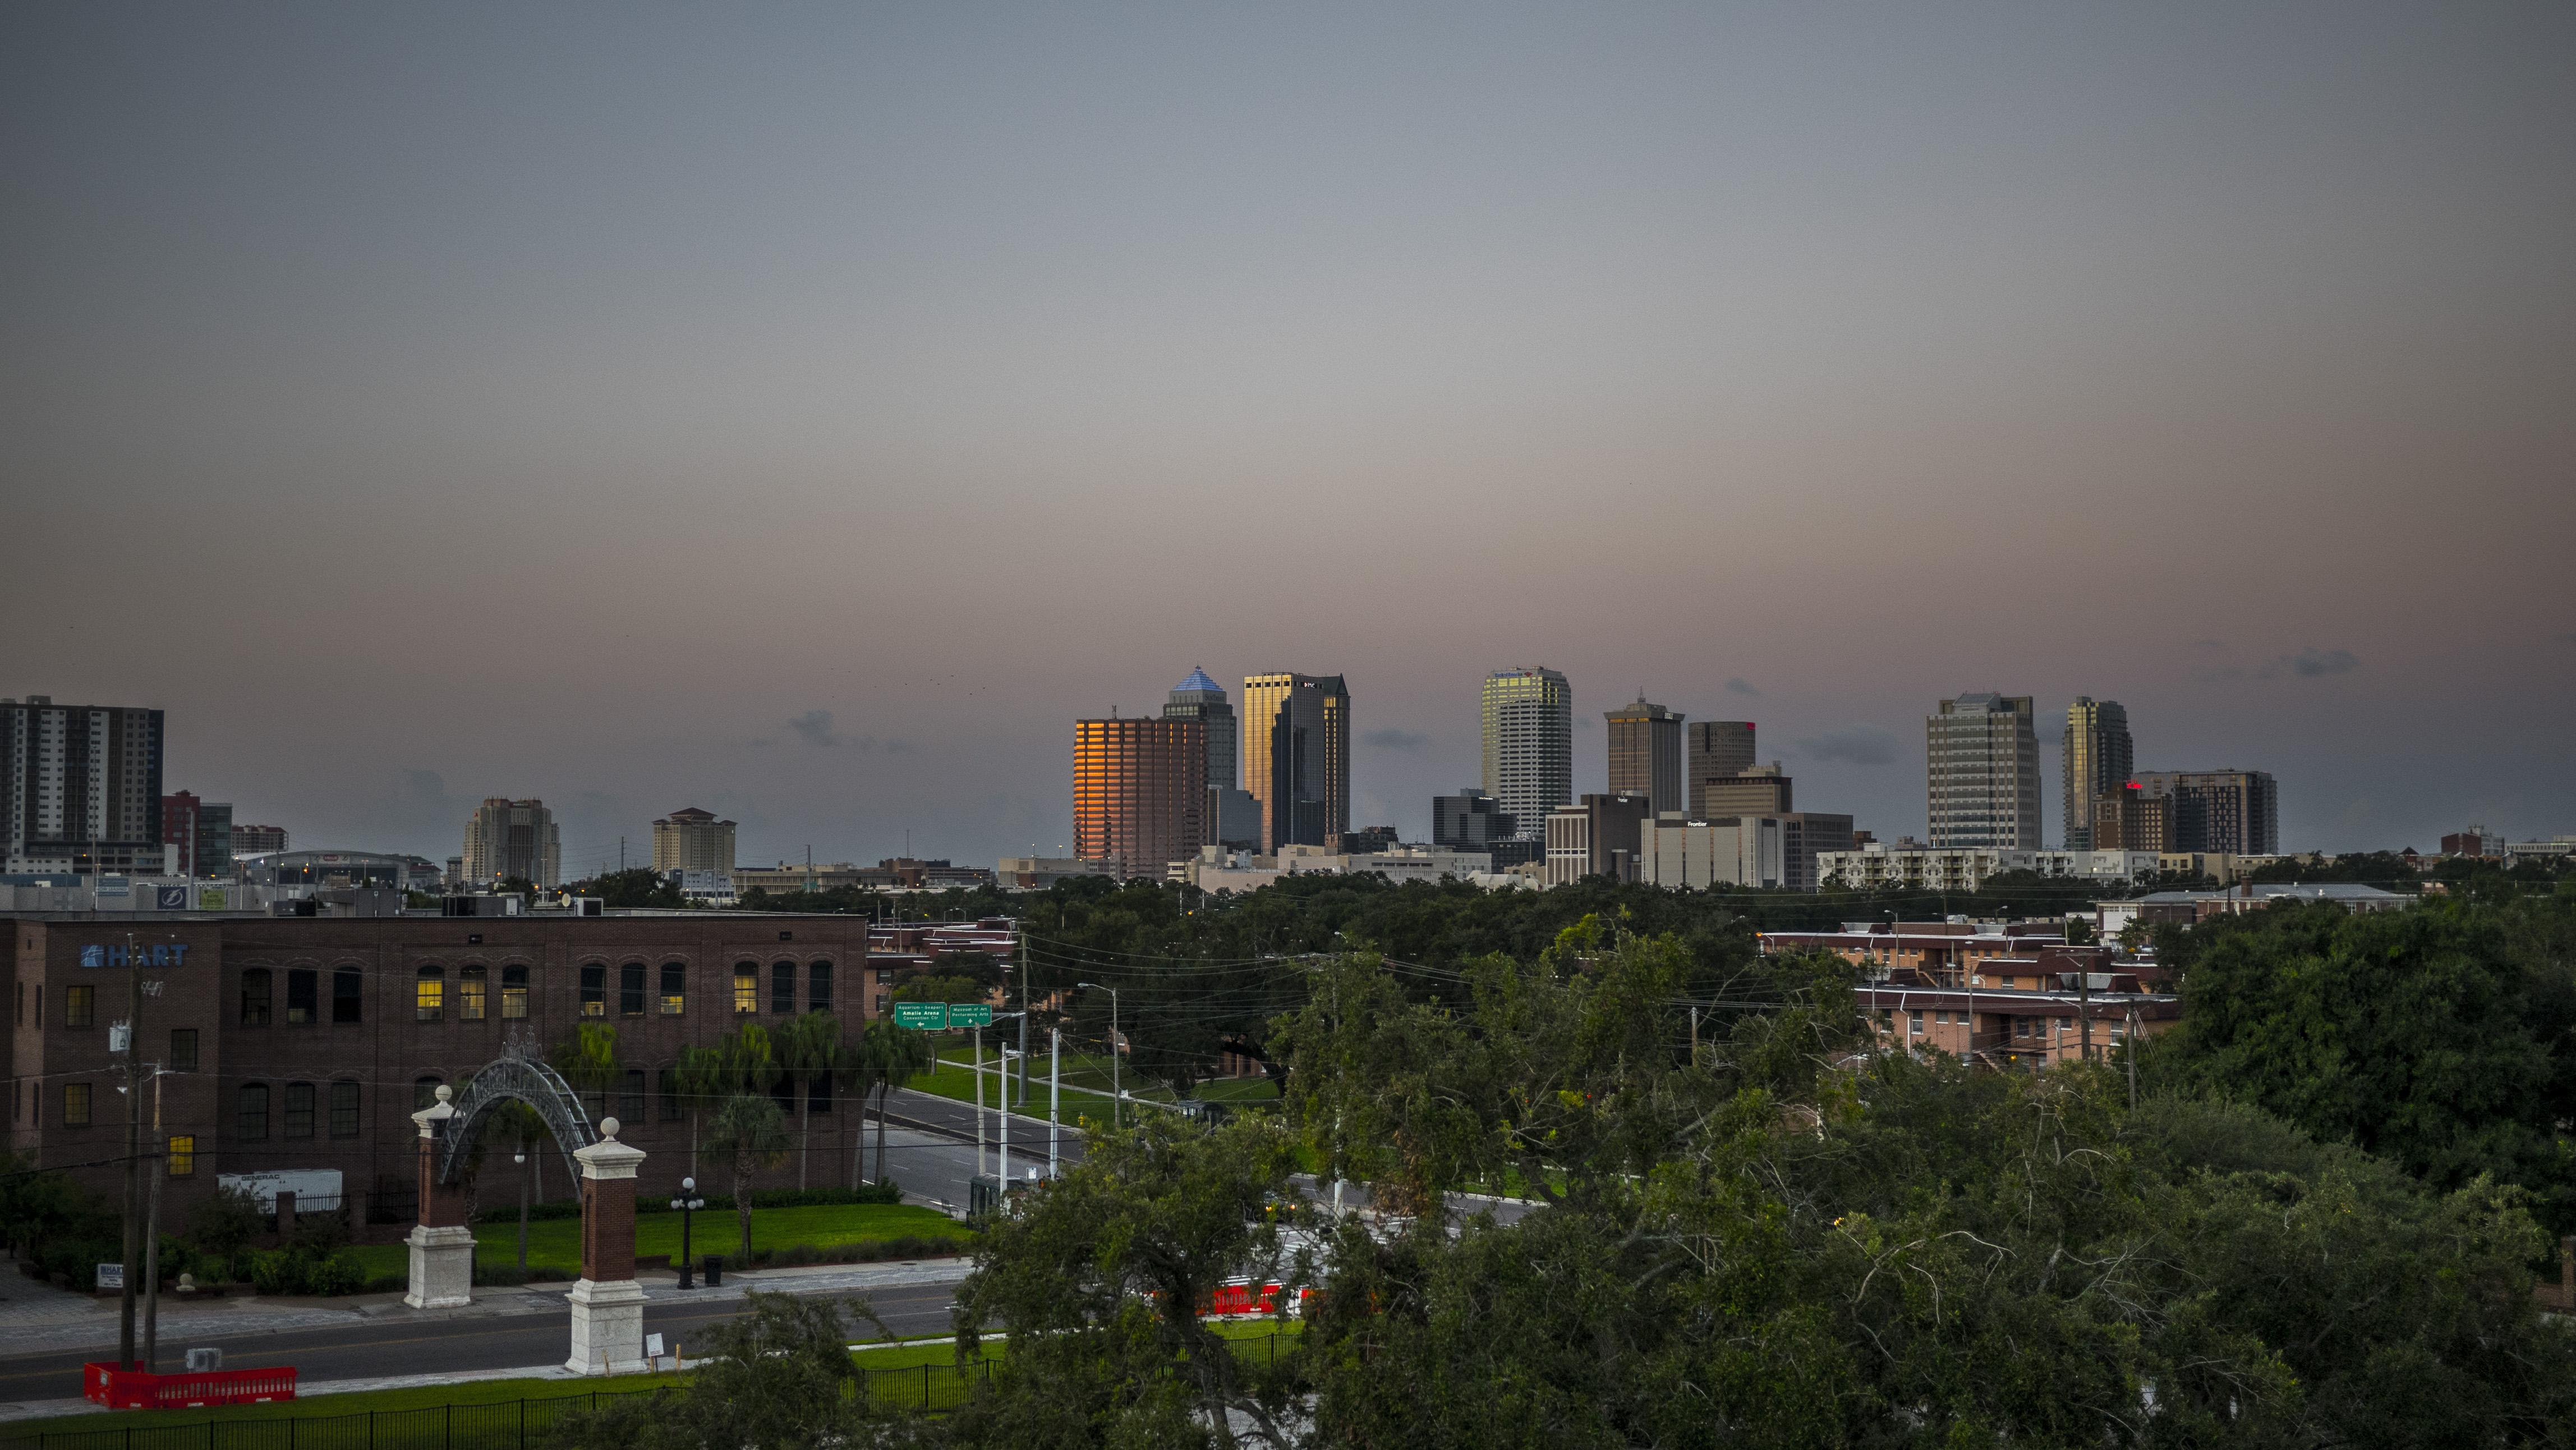 View of Ybor' City's Gate looking out to the Tampa Skyline with Channelside and Amelie Arena in the distance